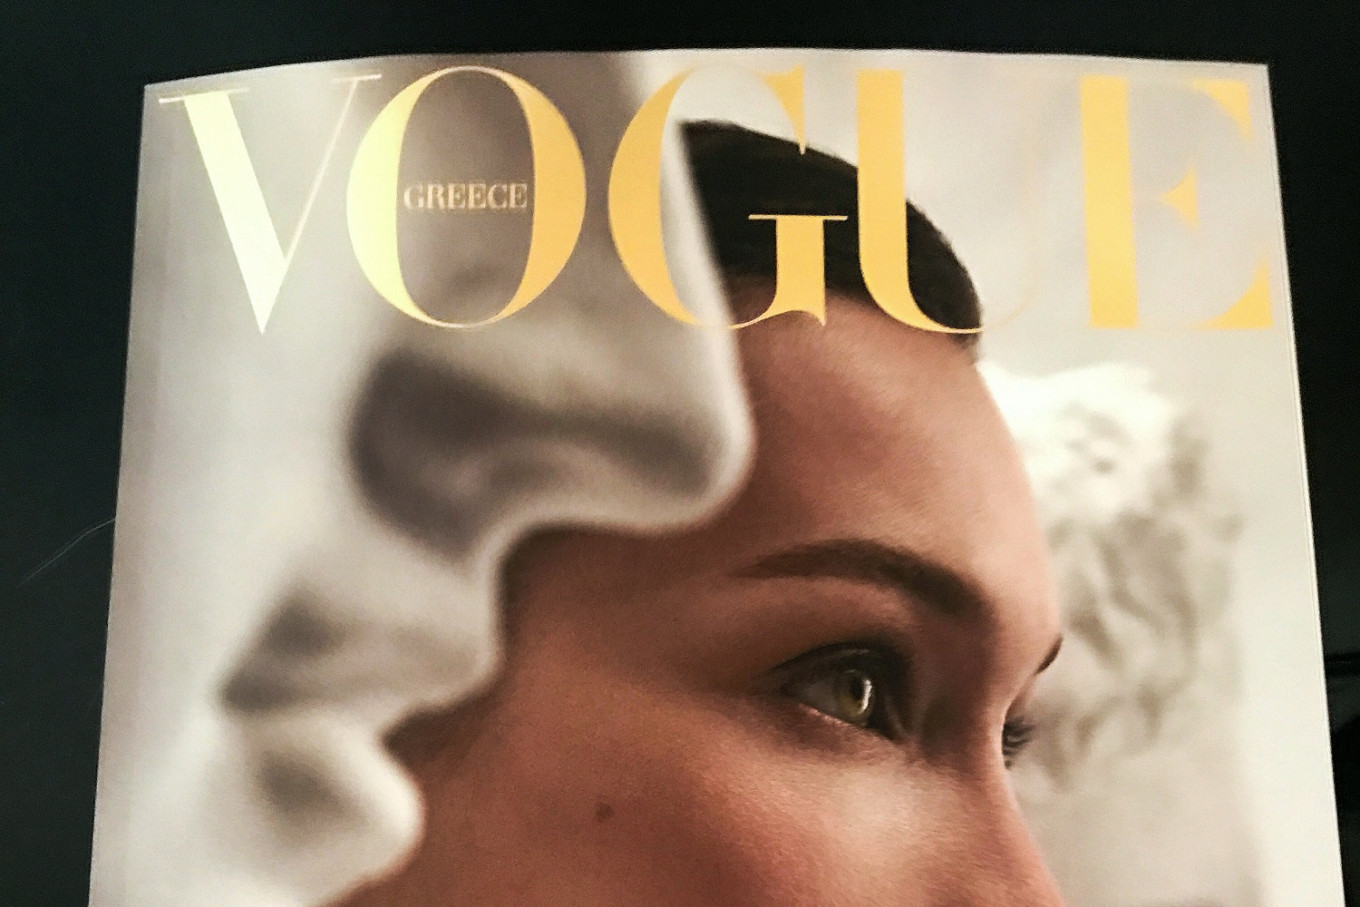 Vogue magazine makes comeback in Greece as debt crisis ebbs